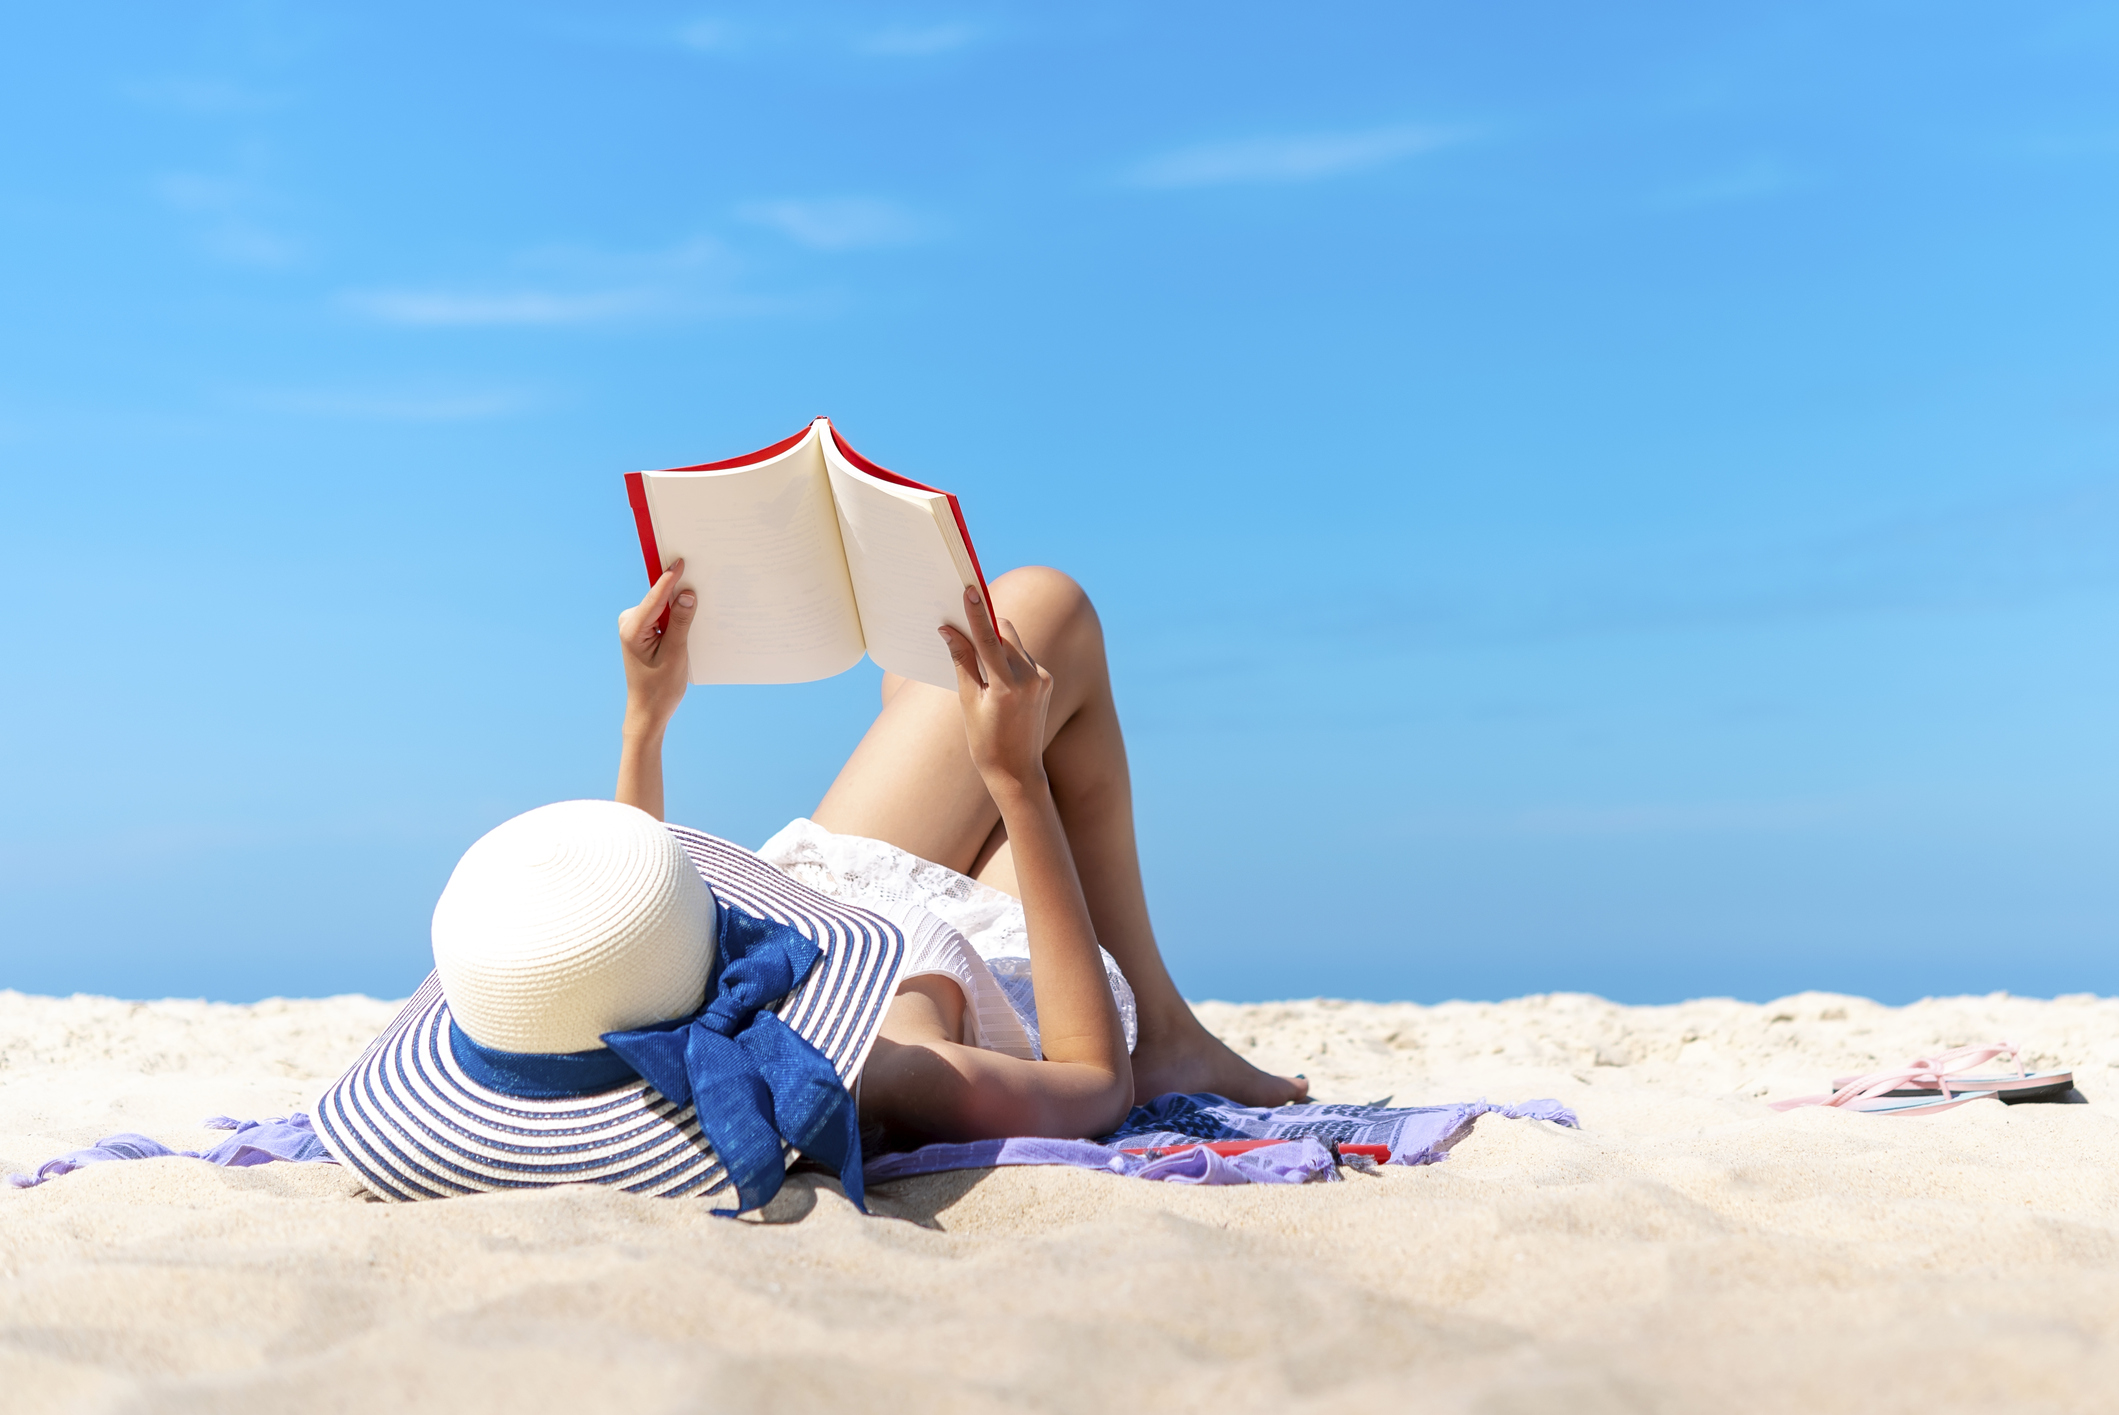 13 new paperbacks to stash in your beach bag for summer reading